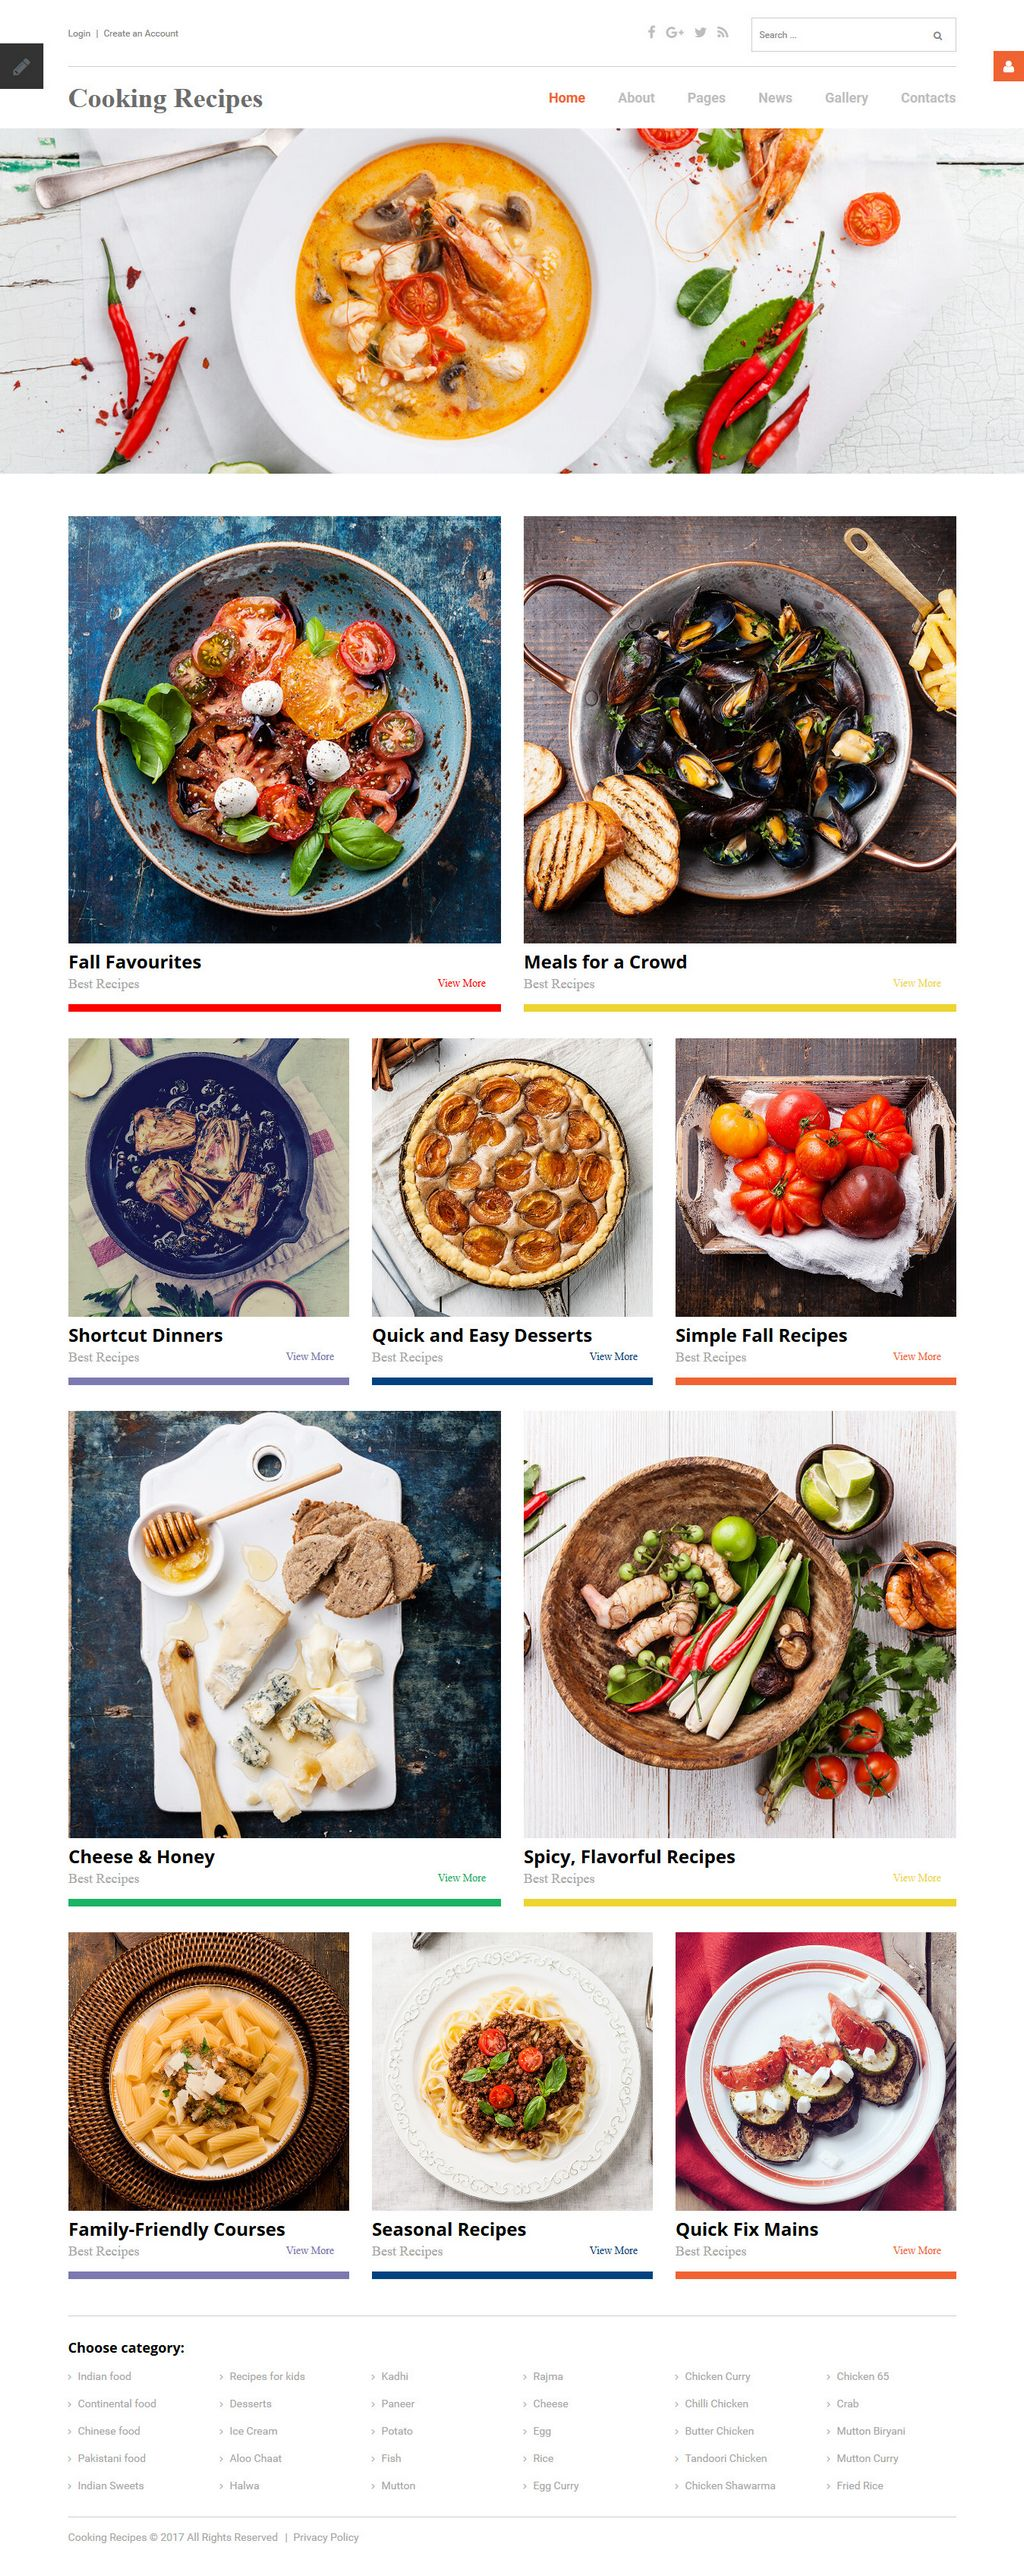 cooking receipes joomla template 01 - cooking-receipes-joomla-template-01